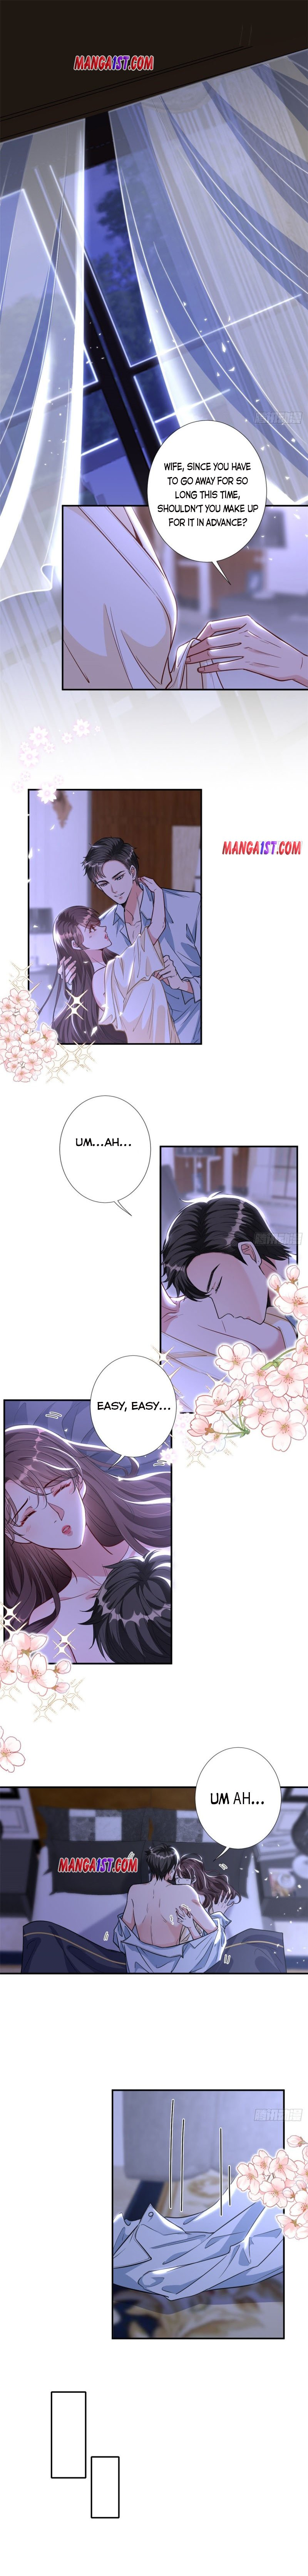 Trial Marriage Husband: Need To Work Hard - chapter 120 - #1